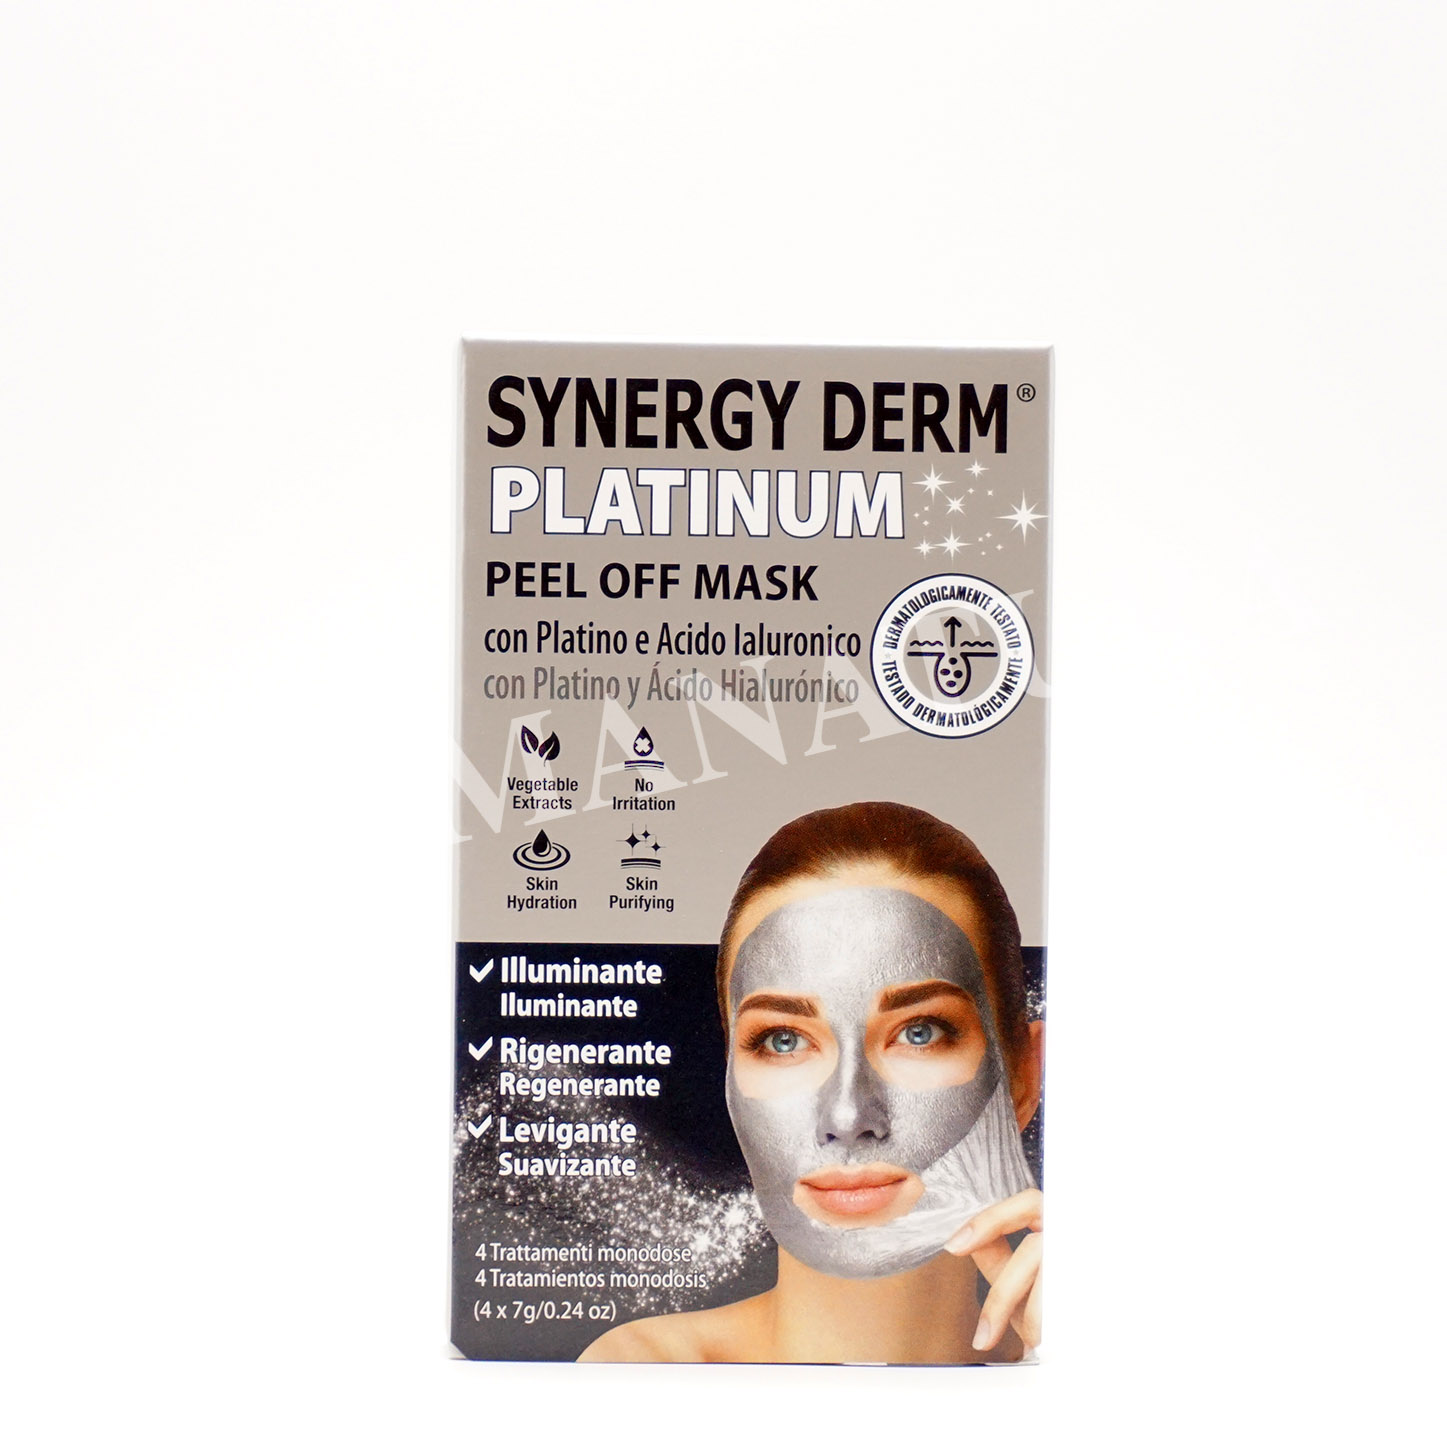 Synergy Derm Platinum Peel Off Mask 4 Trattamenti